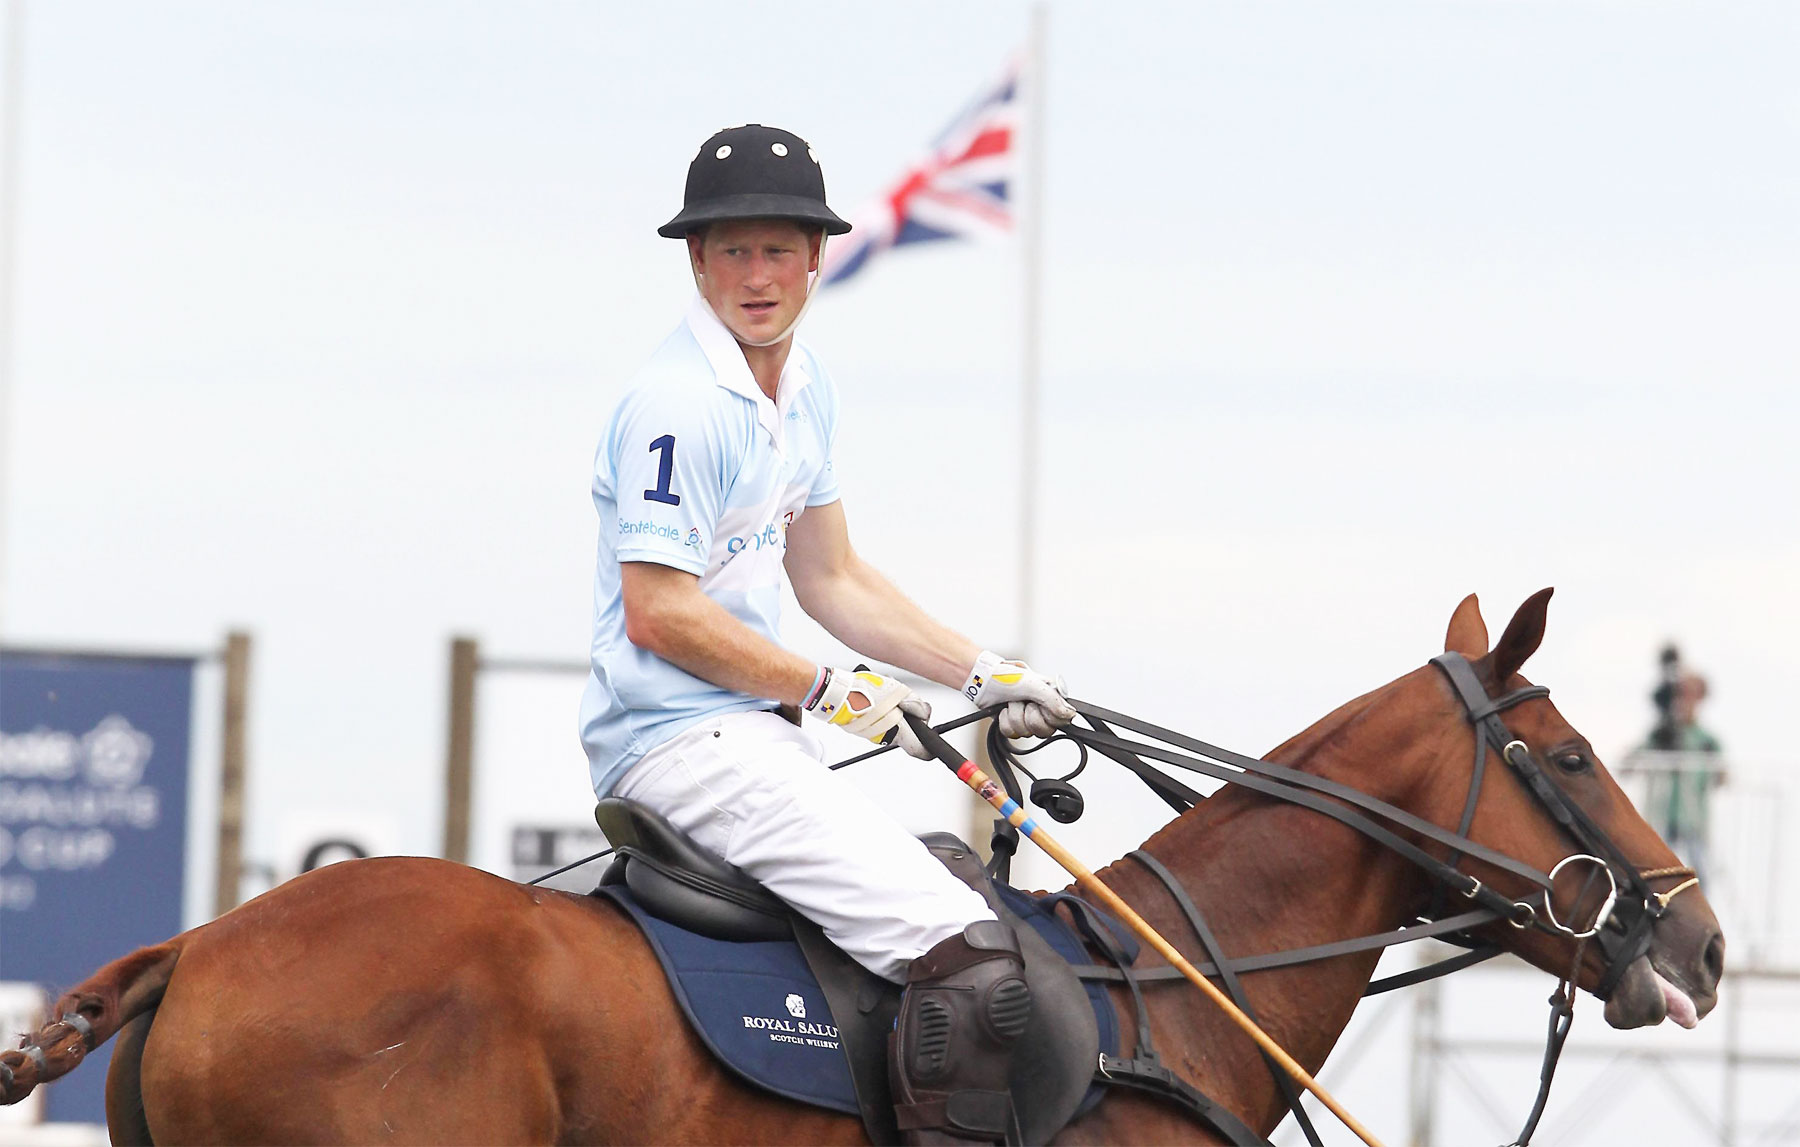 HRH Prince Harry All Set for the 2017 Sentebale Royal Salute Polo Cup